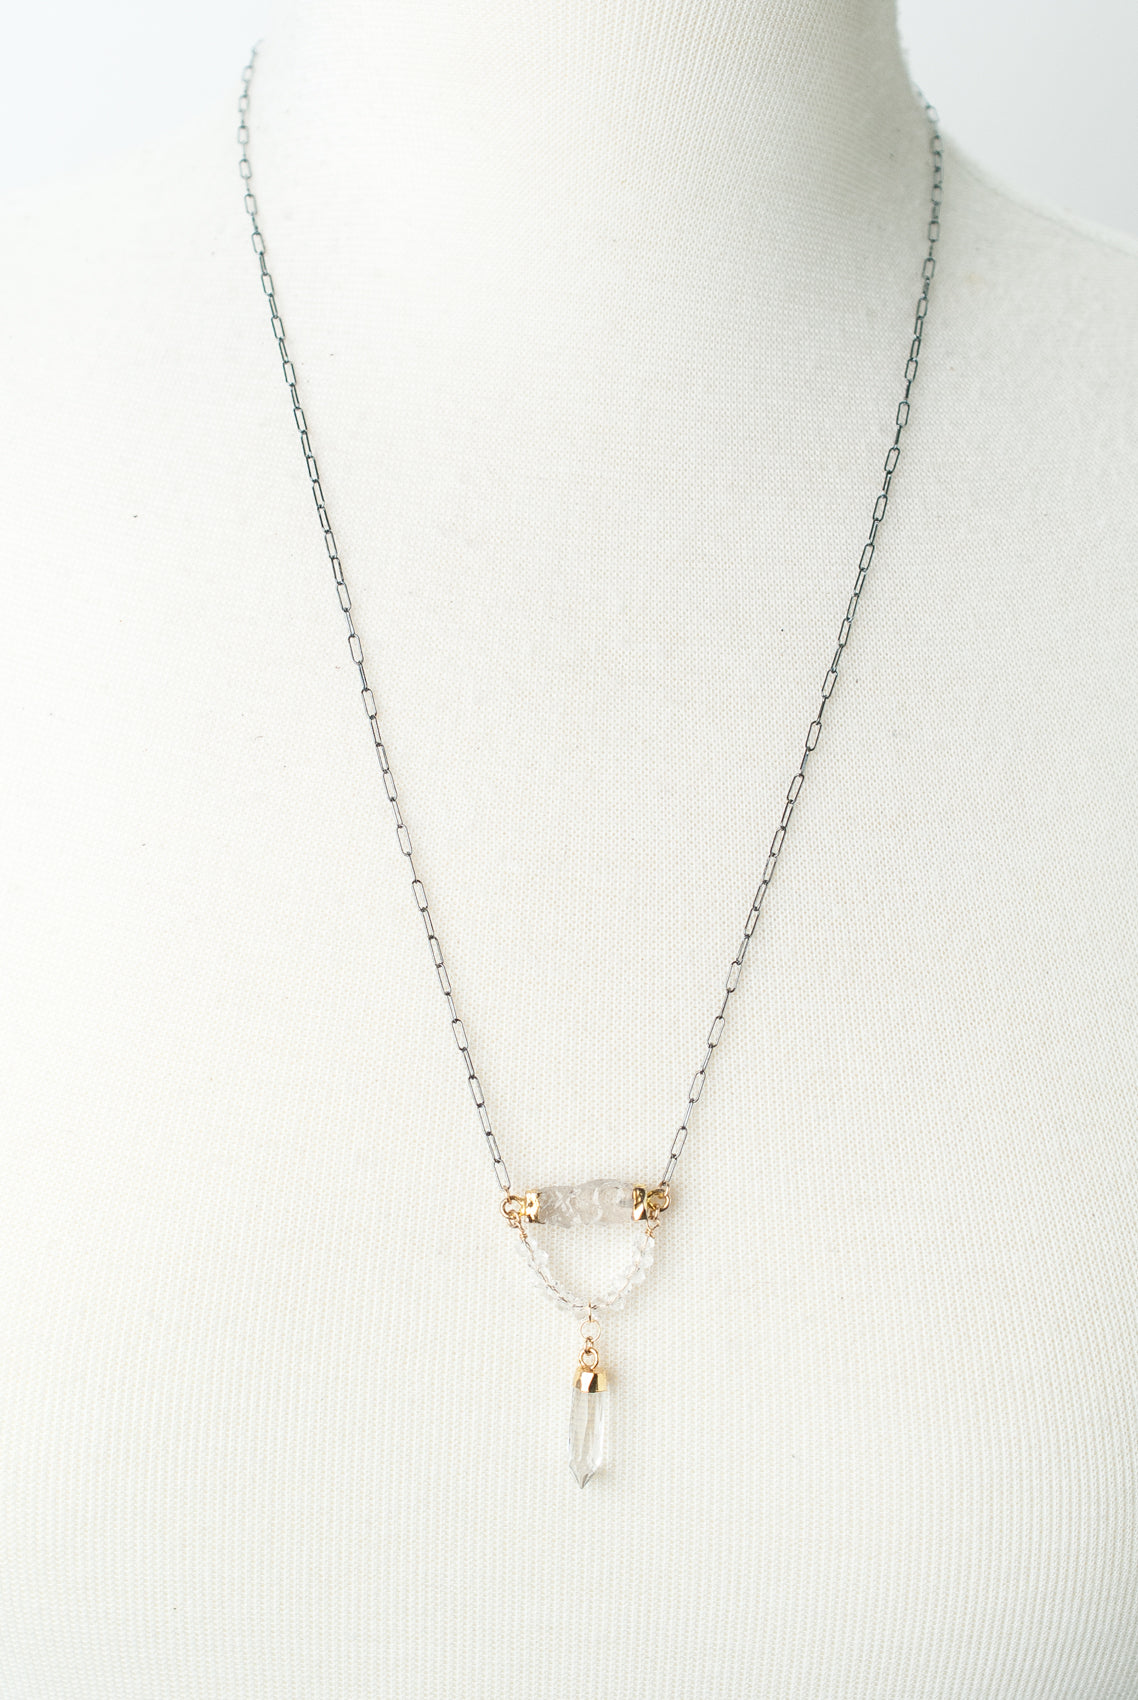 "Limited Edition 23-25"" Quartz Focal Necklace"